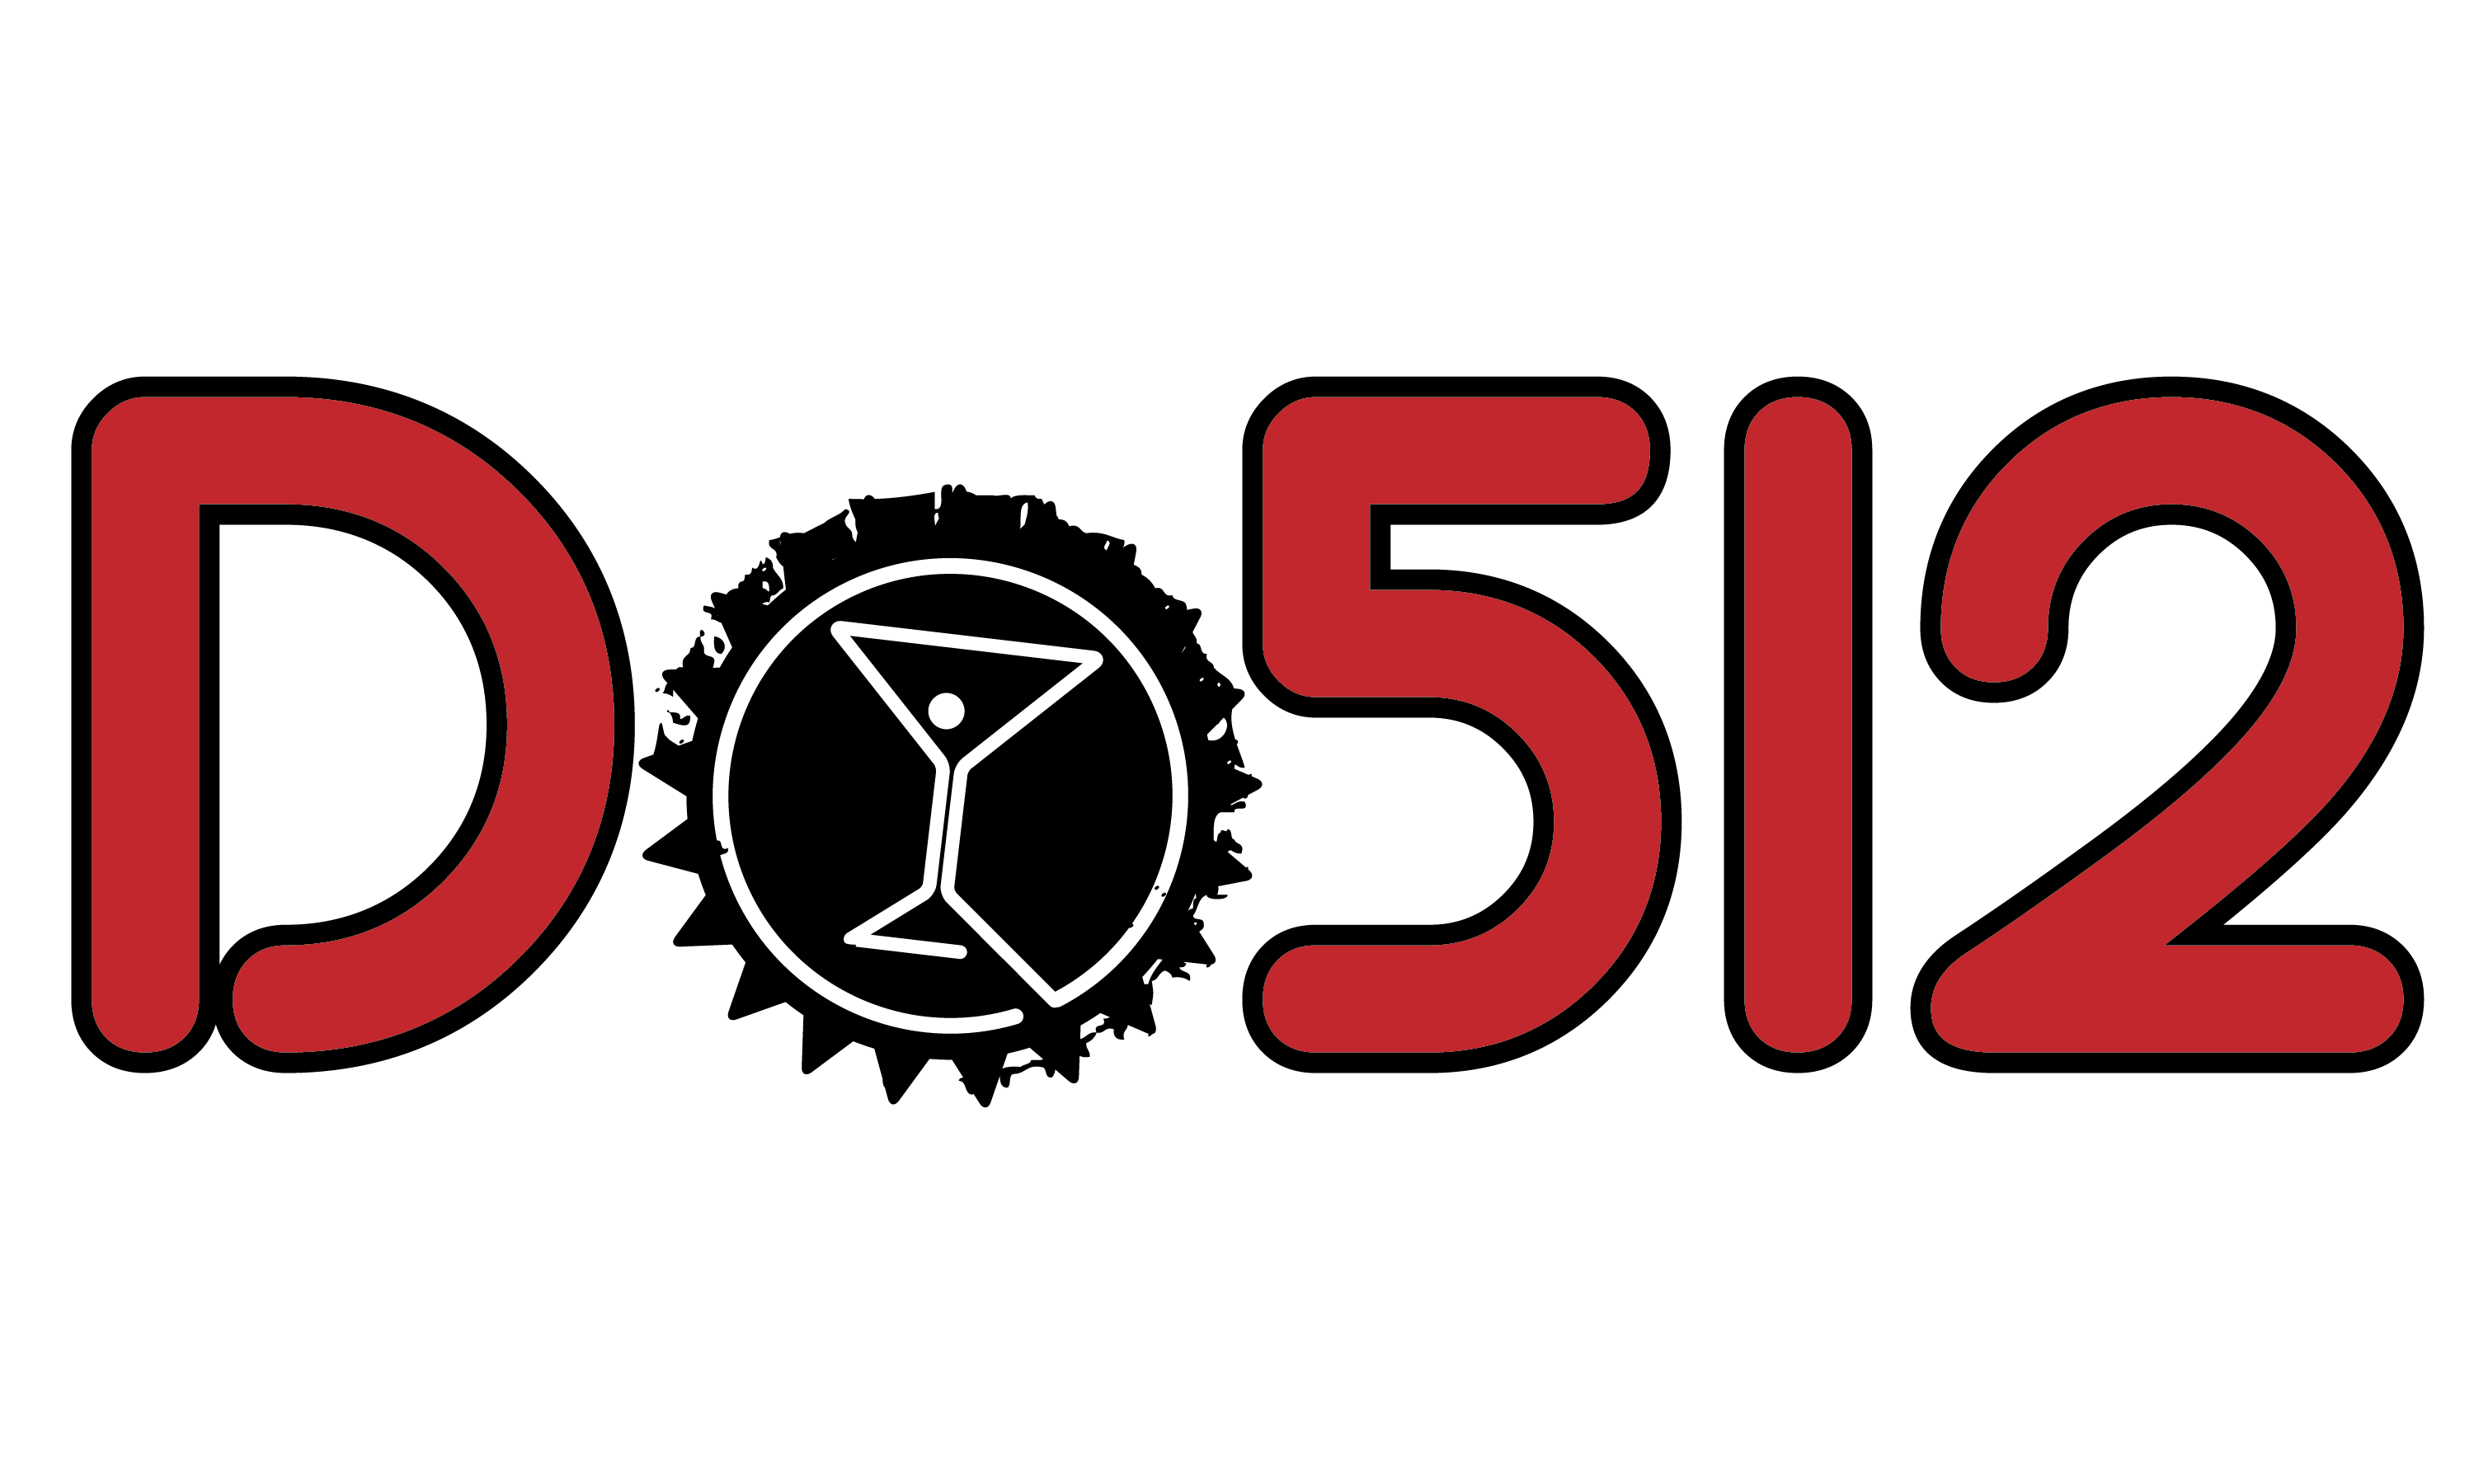 Do512 Color logo